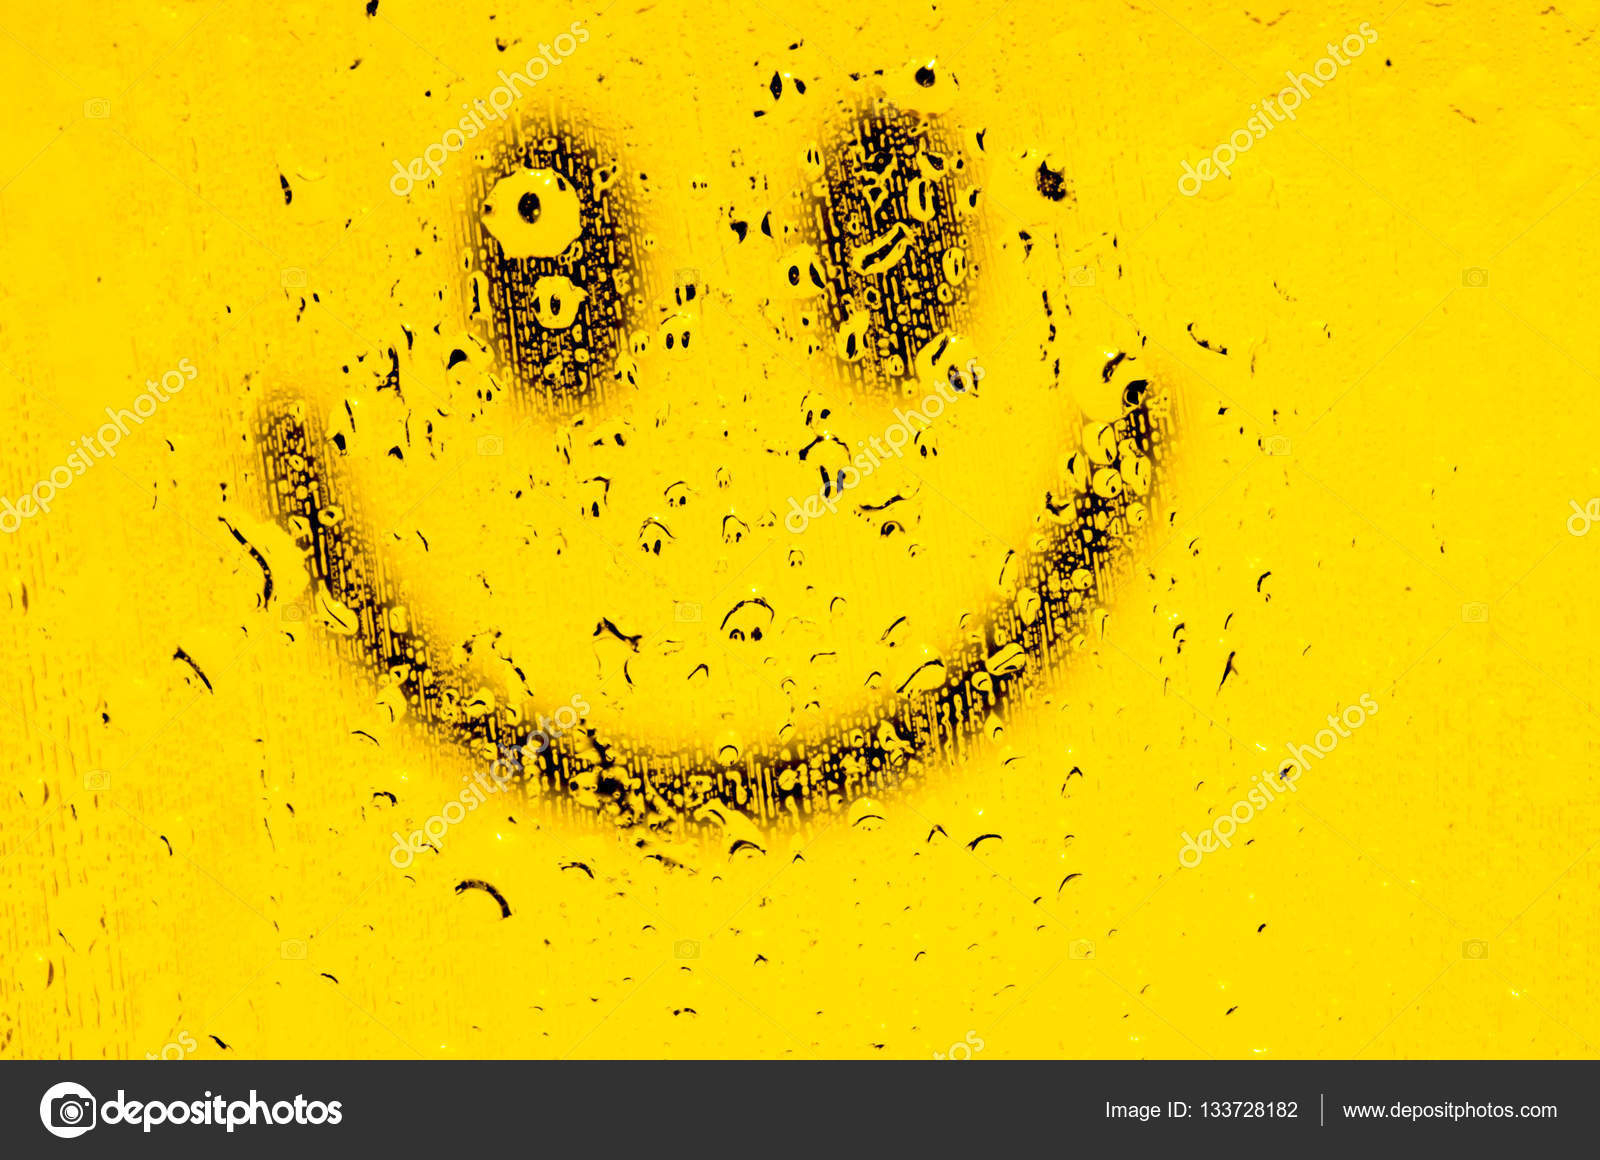 Smiley face yellow smile poster stock photo lomakaster 133728182 smiley face yellow smile poster world smile day funny yellow smiley and water drops a drop of water on a yellow background smiley wallpaper altavistaventures Images